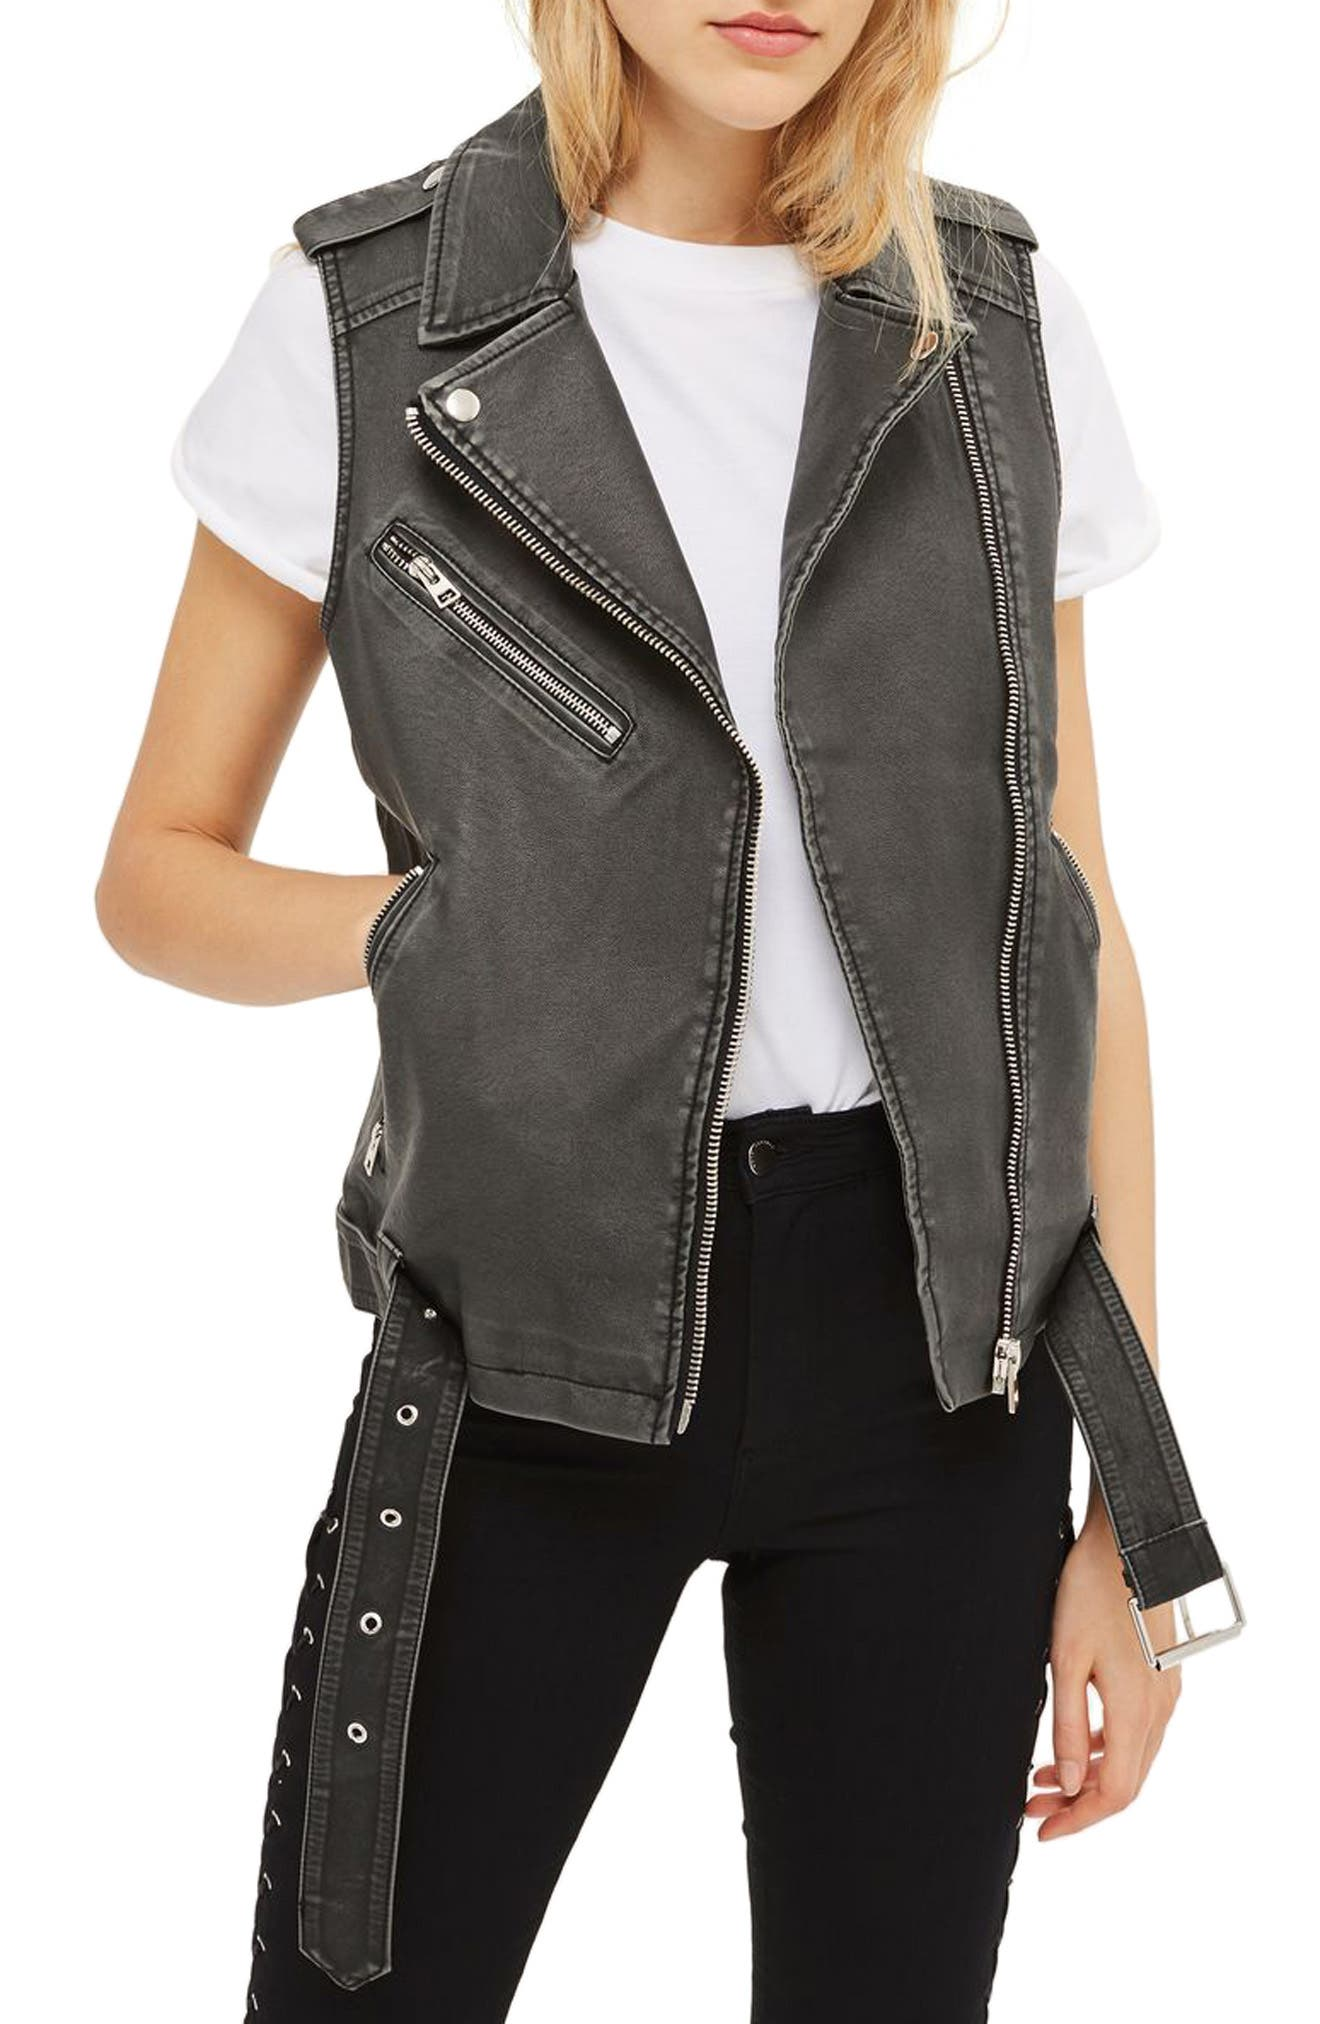 Topshop Blaze Faux Leather Biker Vest